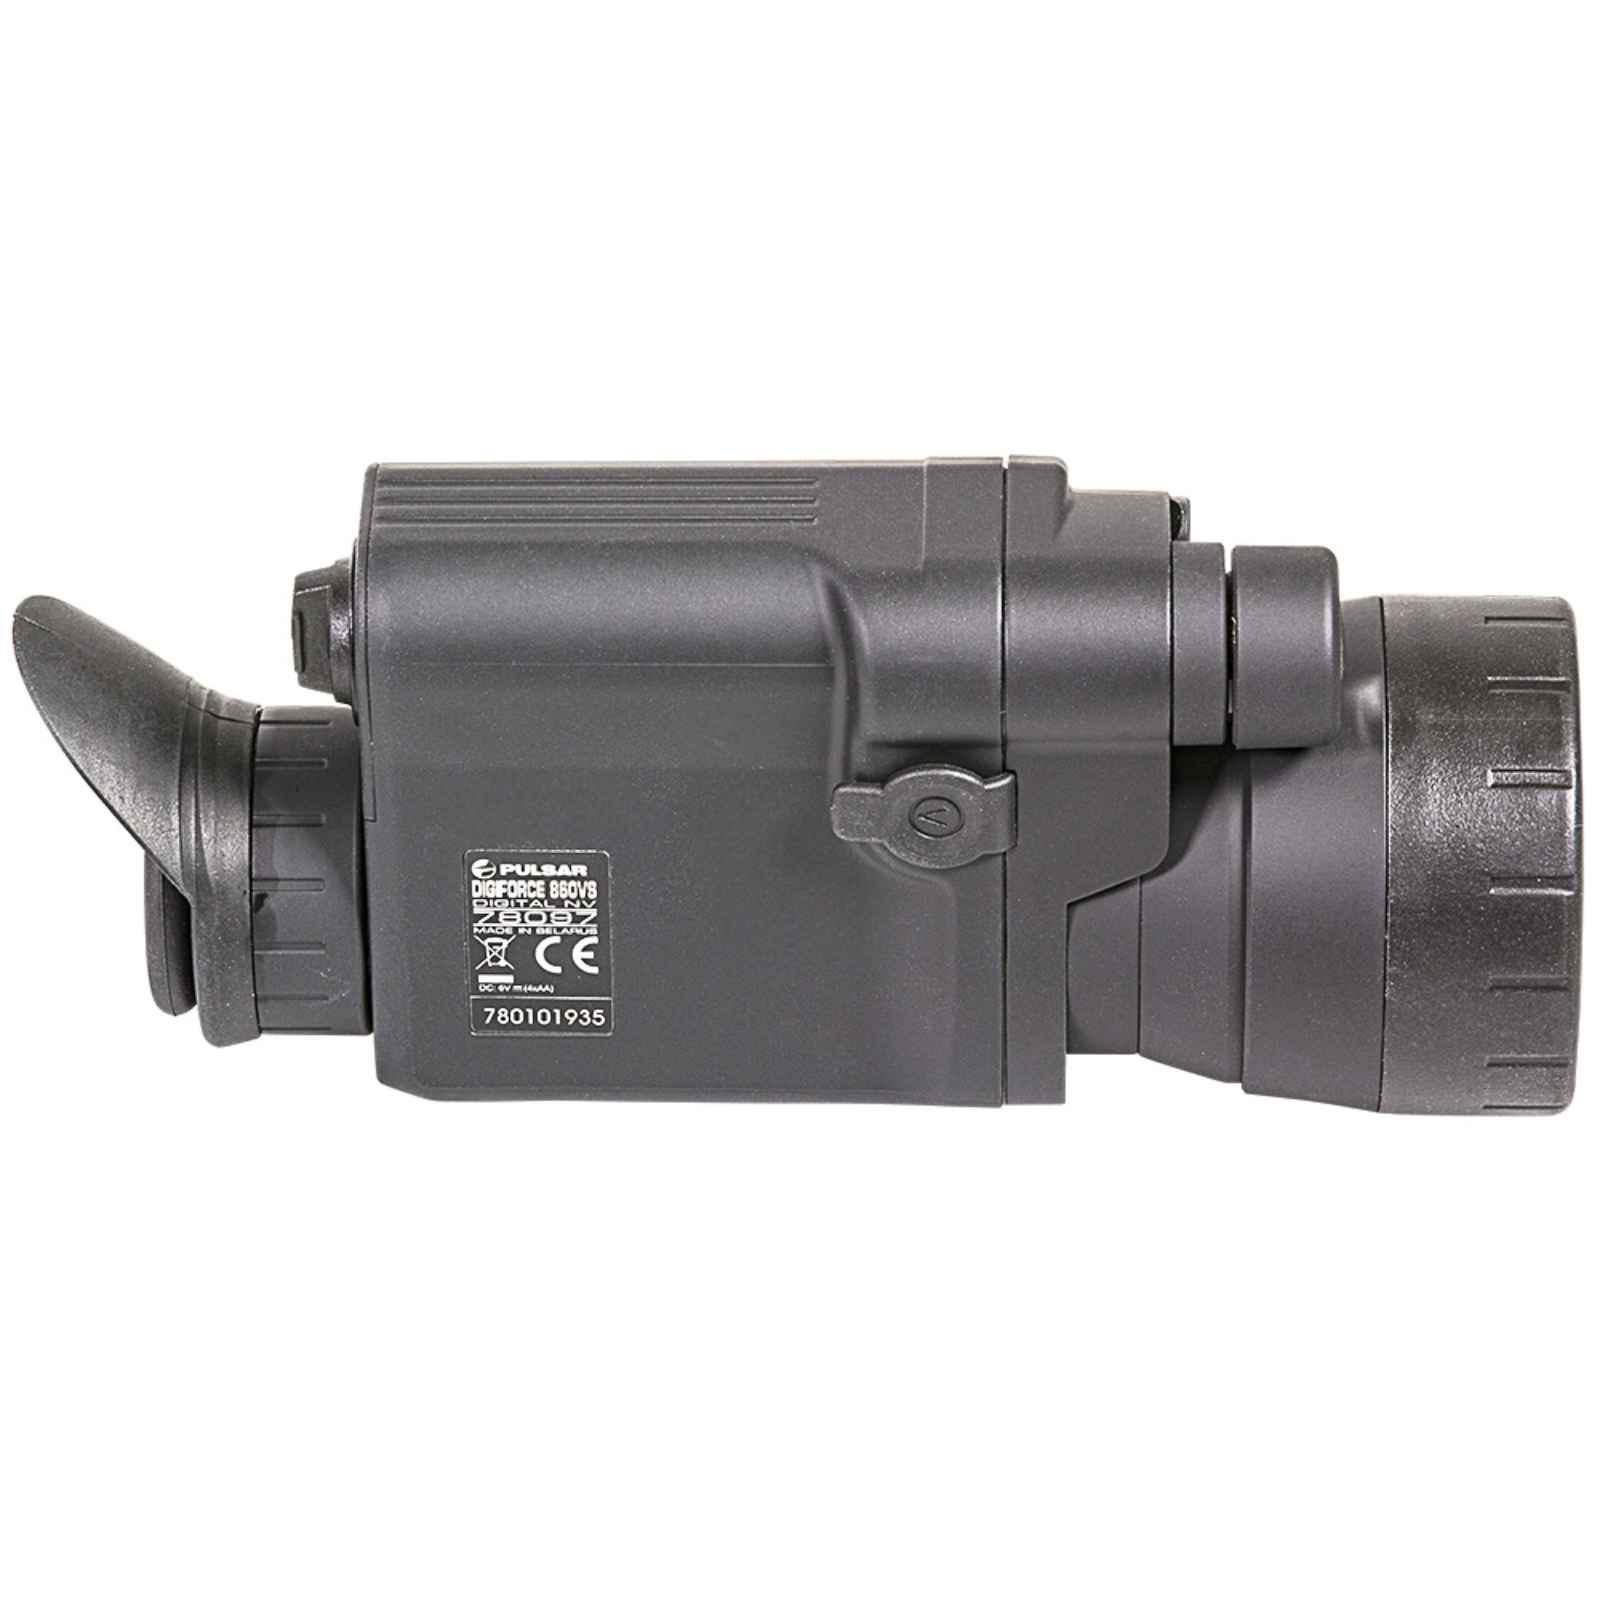 Click here to buy Pulsar Digiforce 860VS Digital NV Monocular PL78097 by Pulsar.